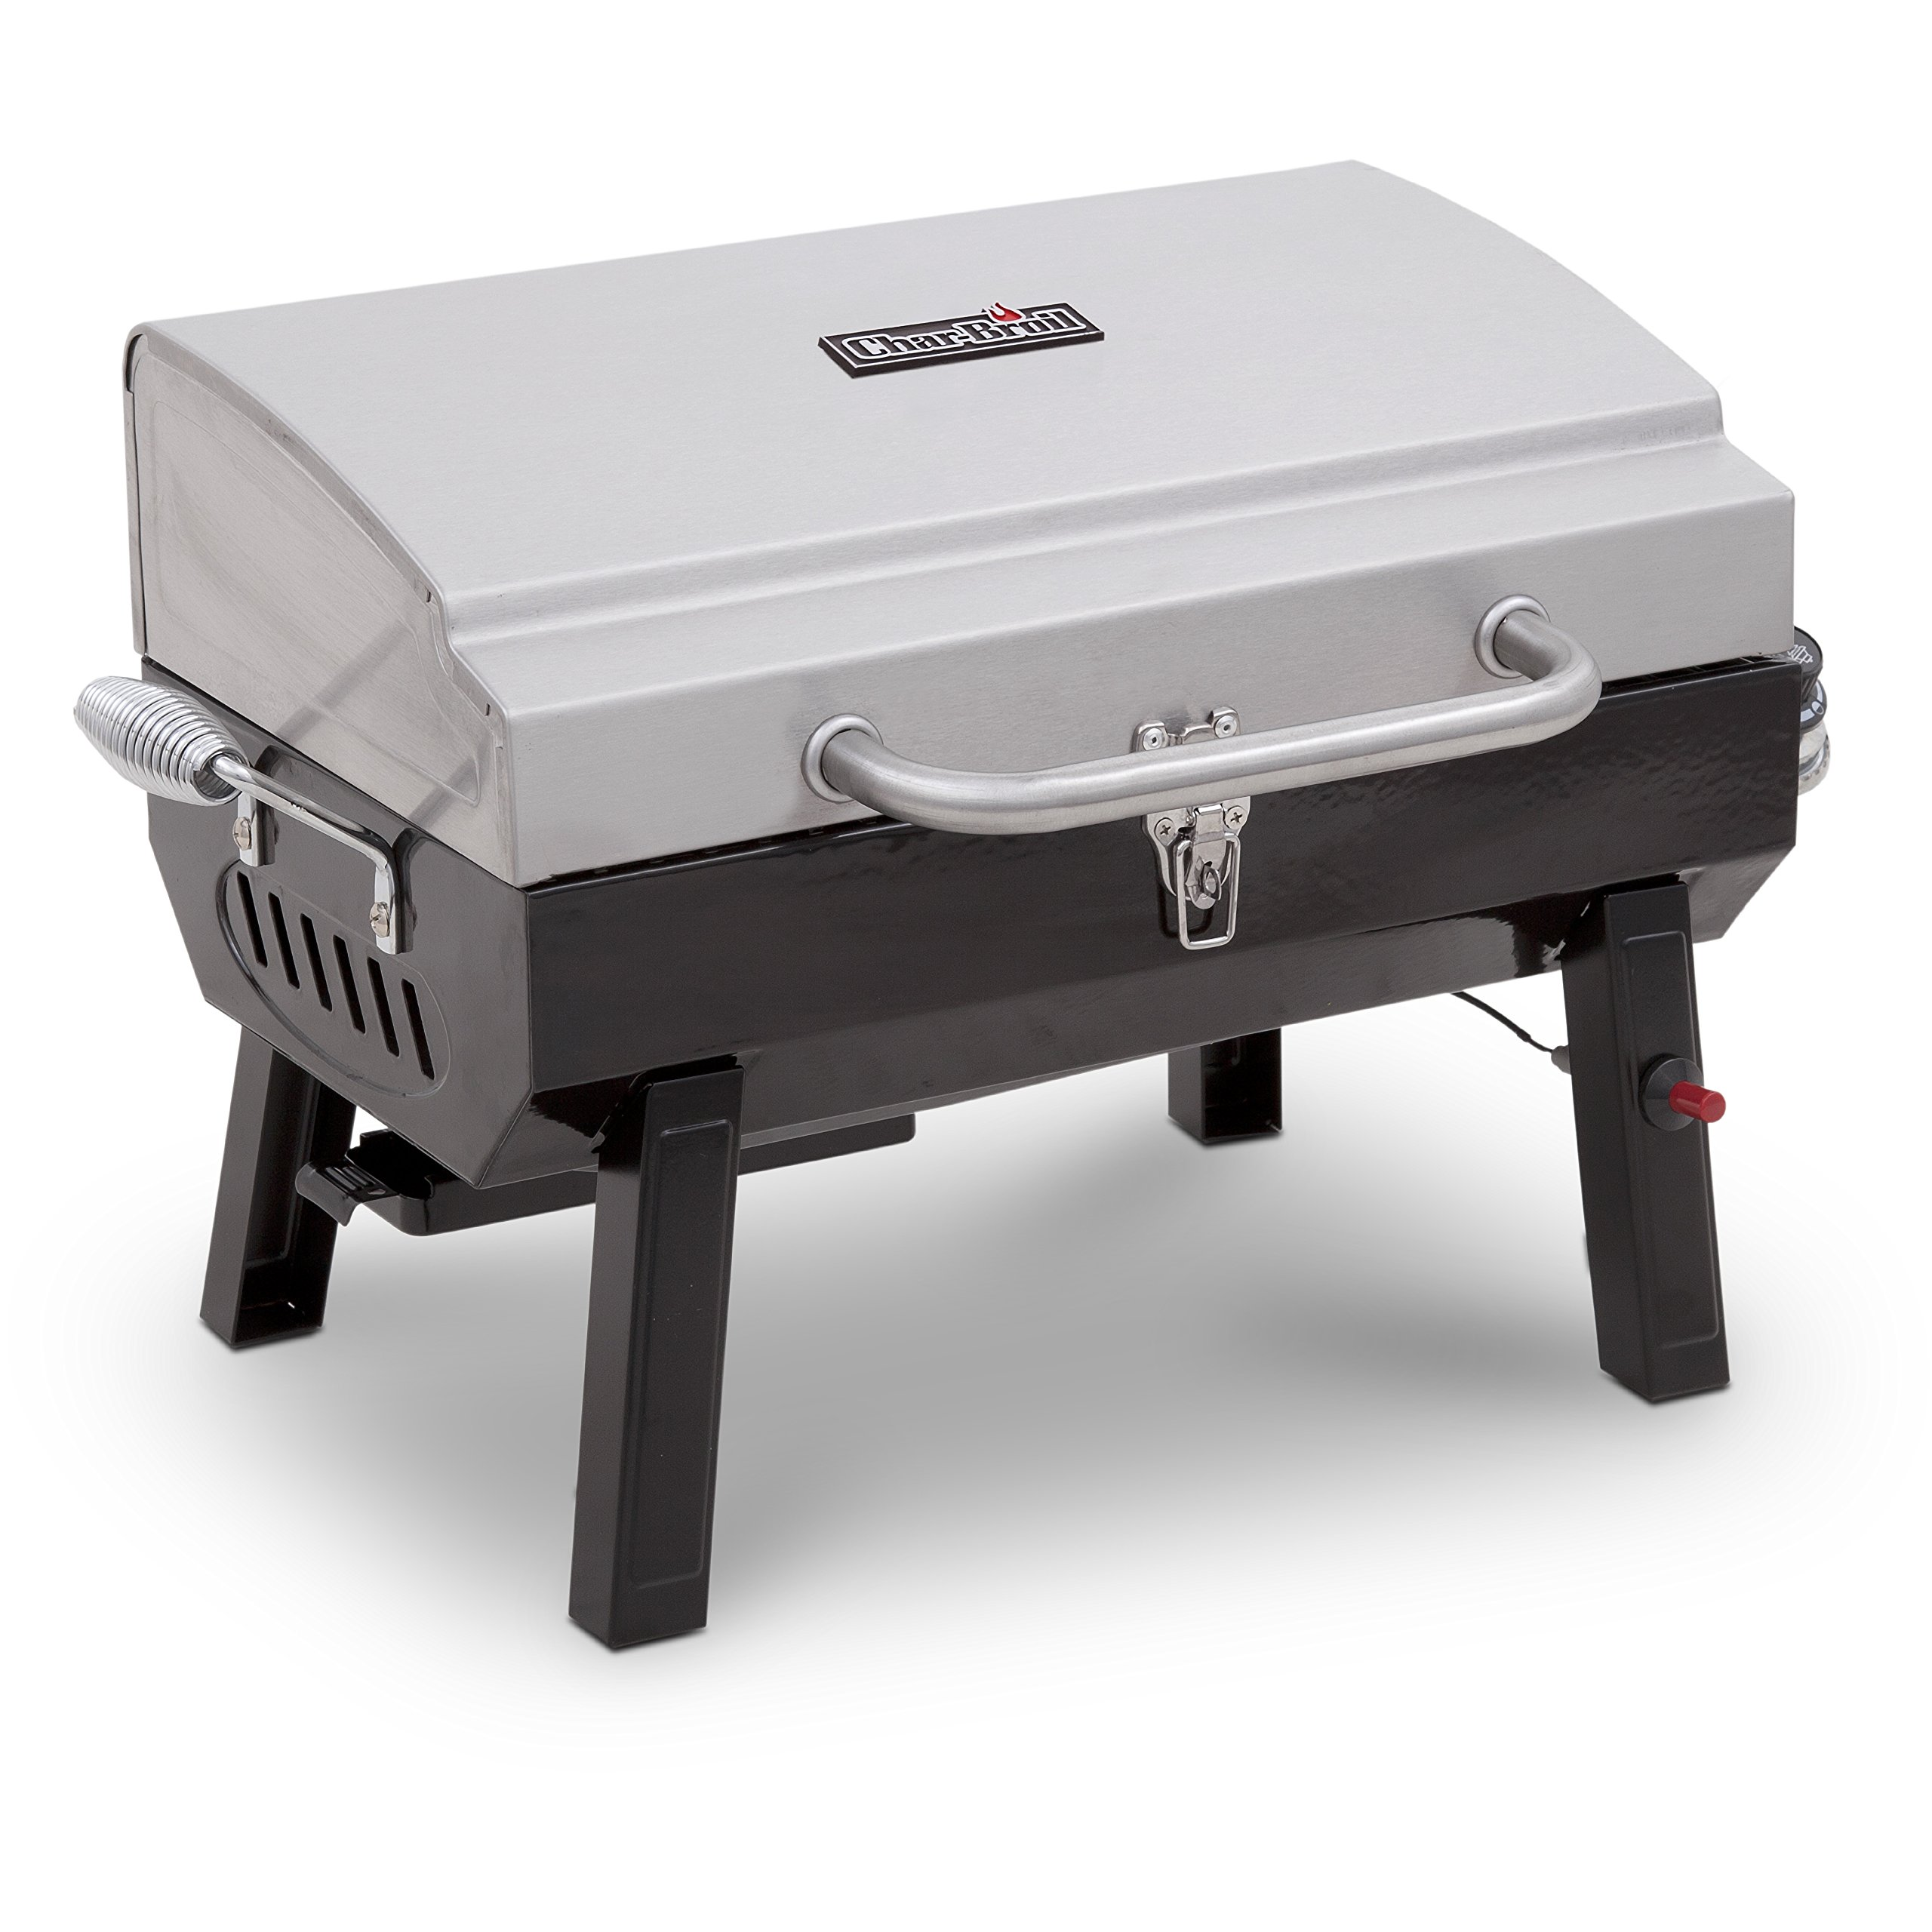 Char-Broil Stainless Steel Portable Liquid Propane Gas Grill by Char-Broil